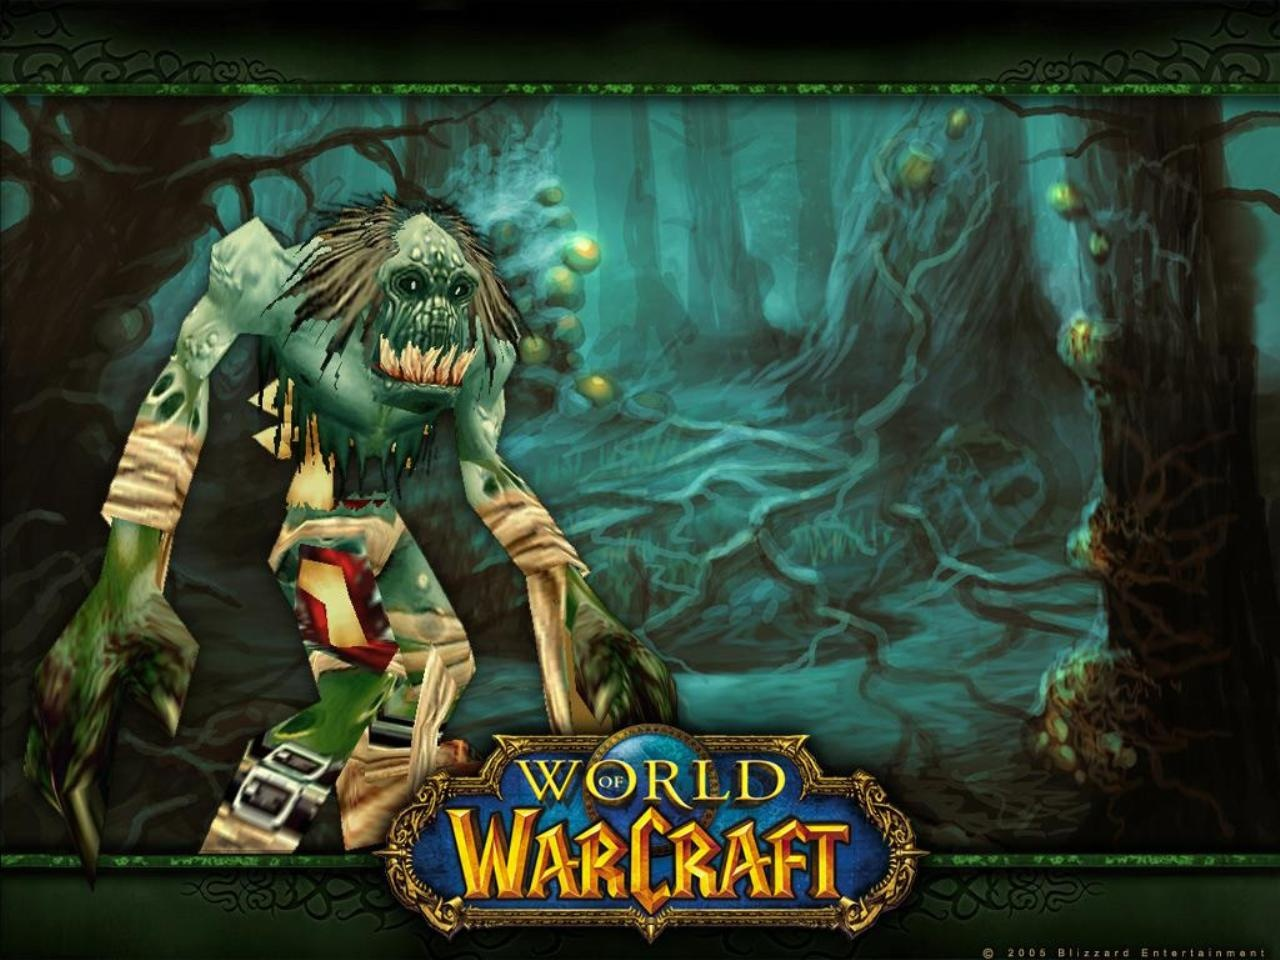 Word warcraftxxx sexy movie